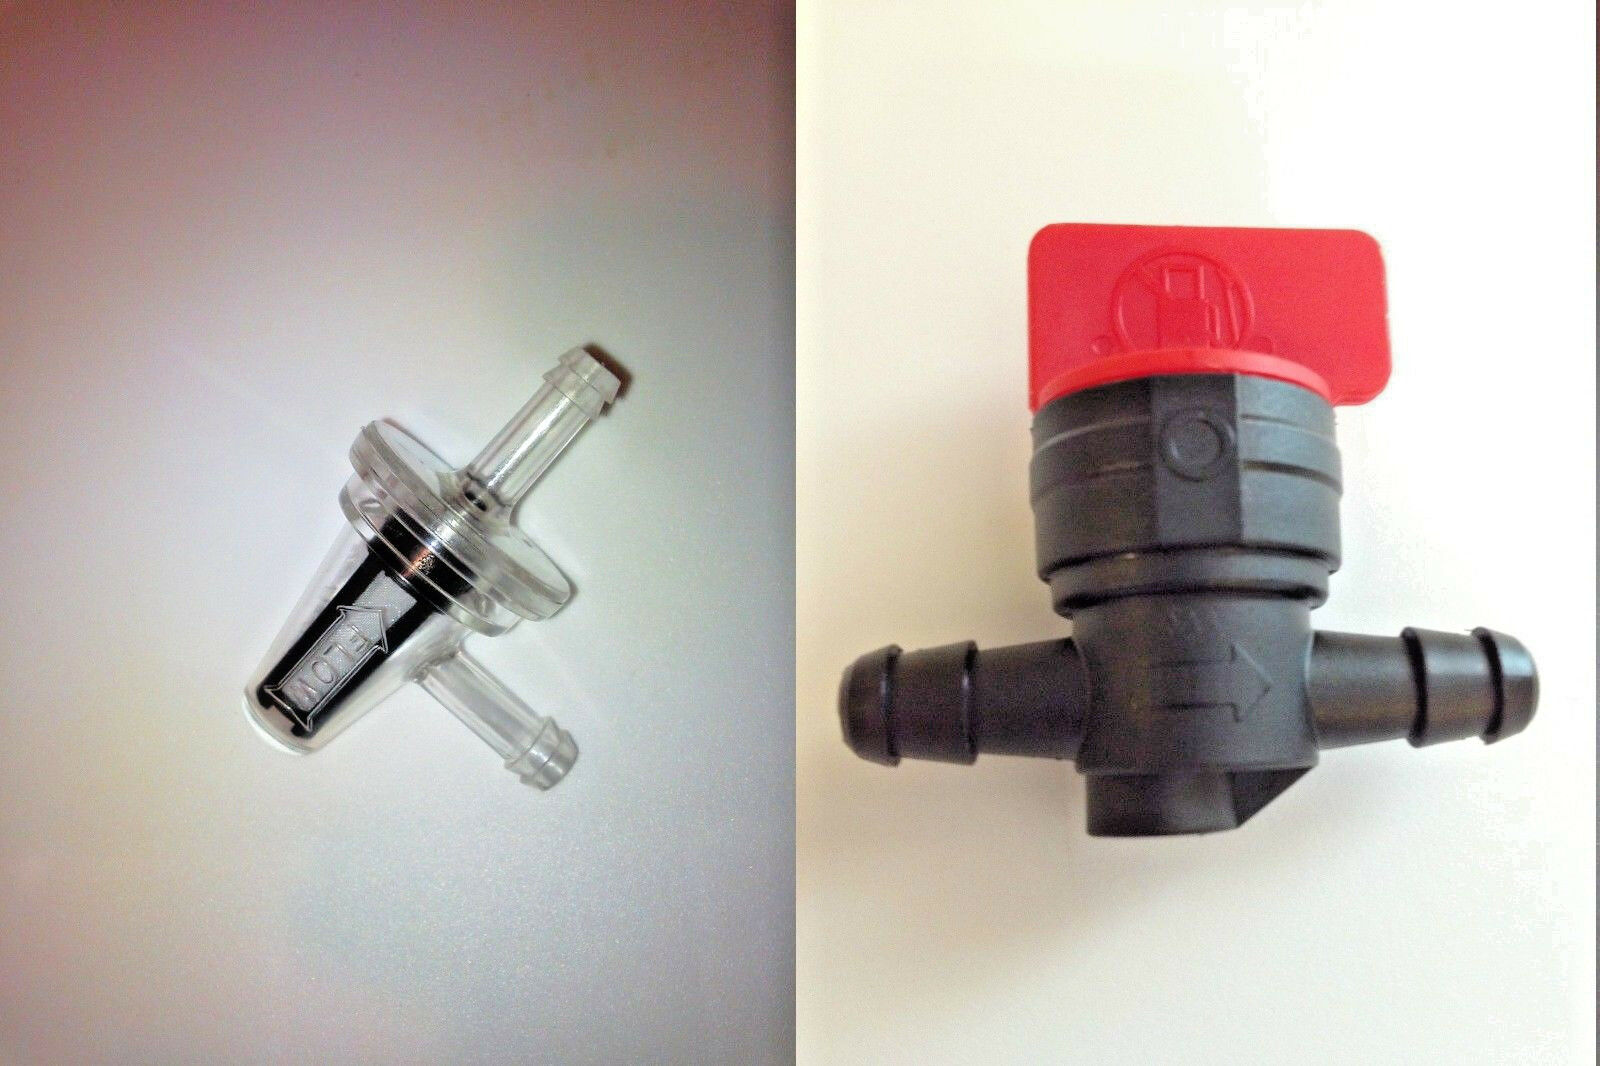 For Honda Fuel 90 Filter Gas Inline Shut Off Valve Switch Kit Virago 250 1 Of 9 See More